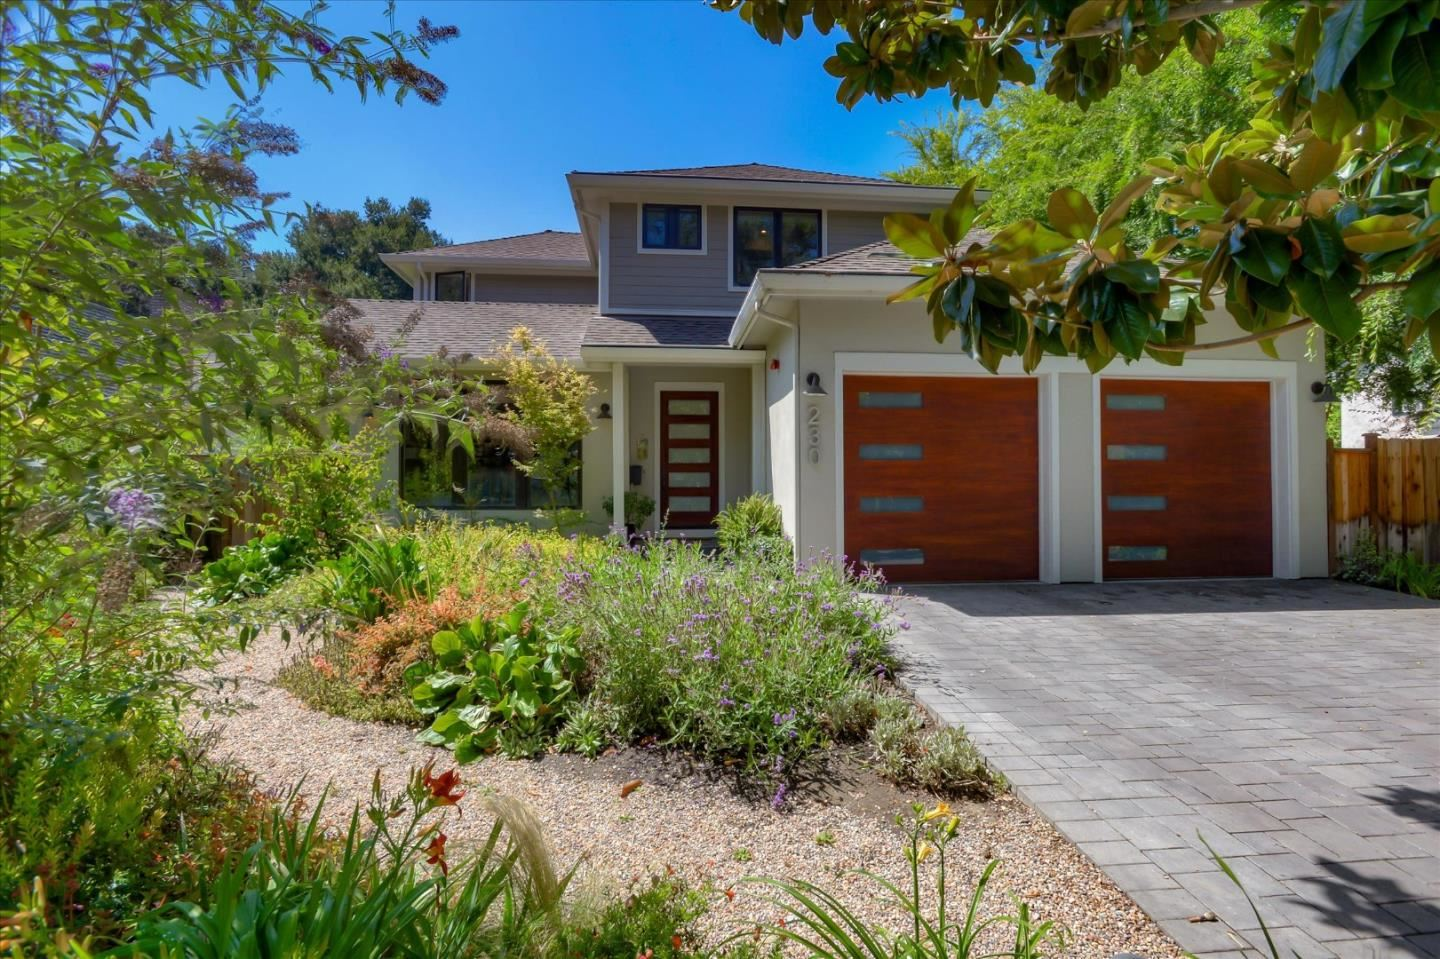 Photo for 230 Oconnor Street, MENLO PARK, CA 94025 (MLS # ML81841626)